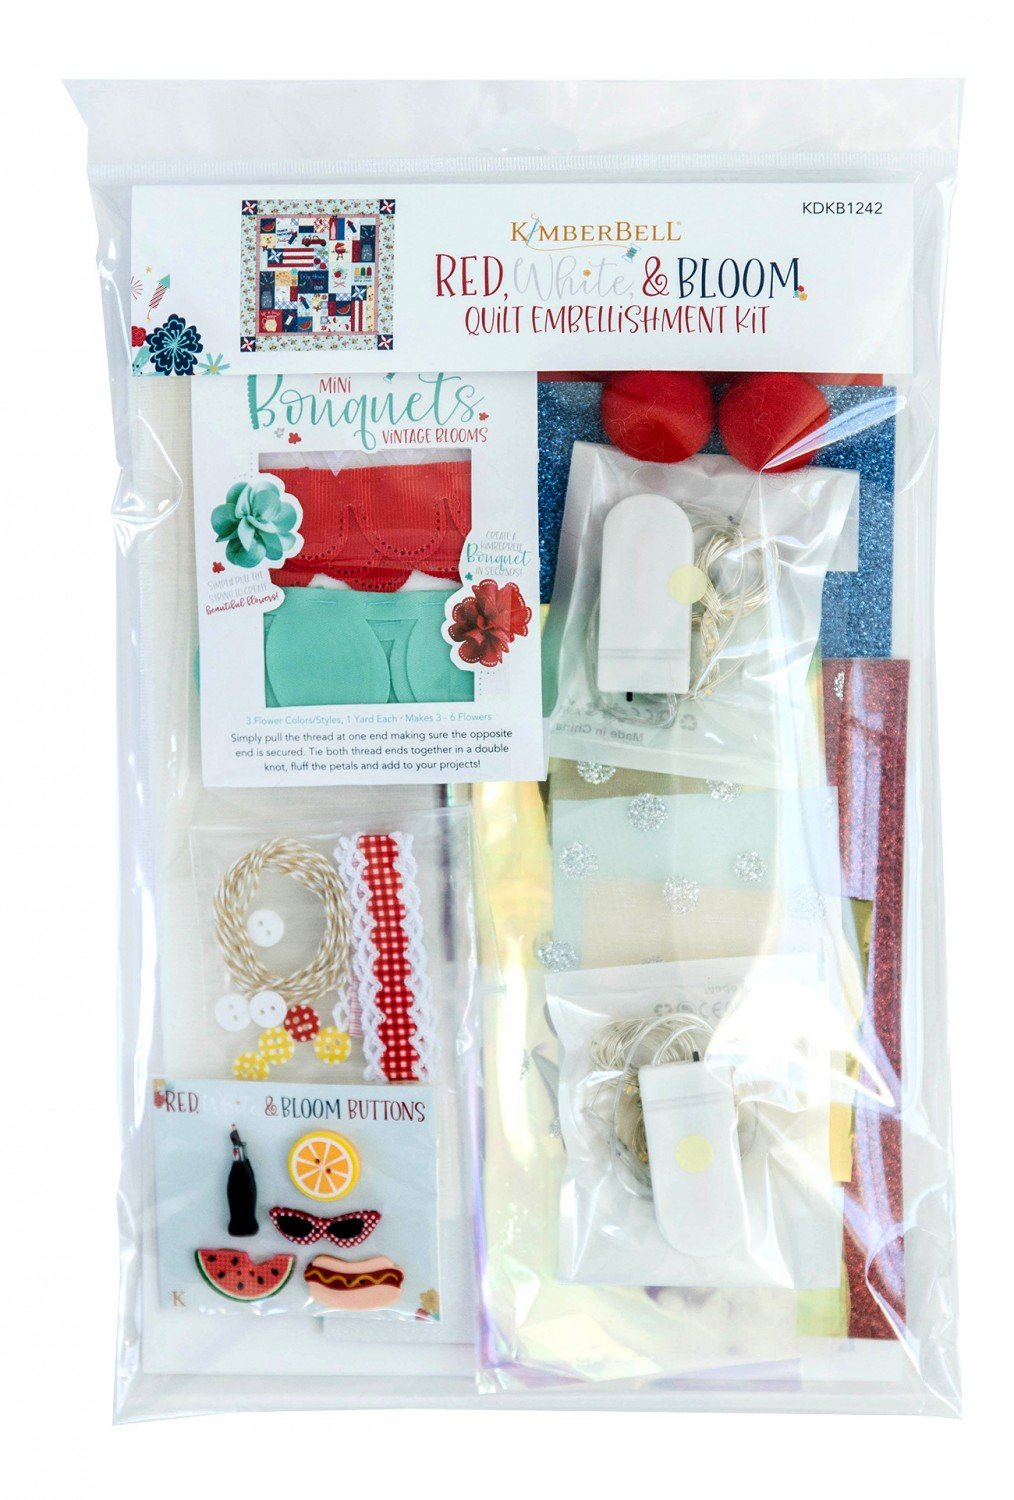 Red, White & Bloom Quilt Embellishments Kit